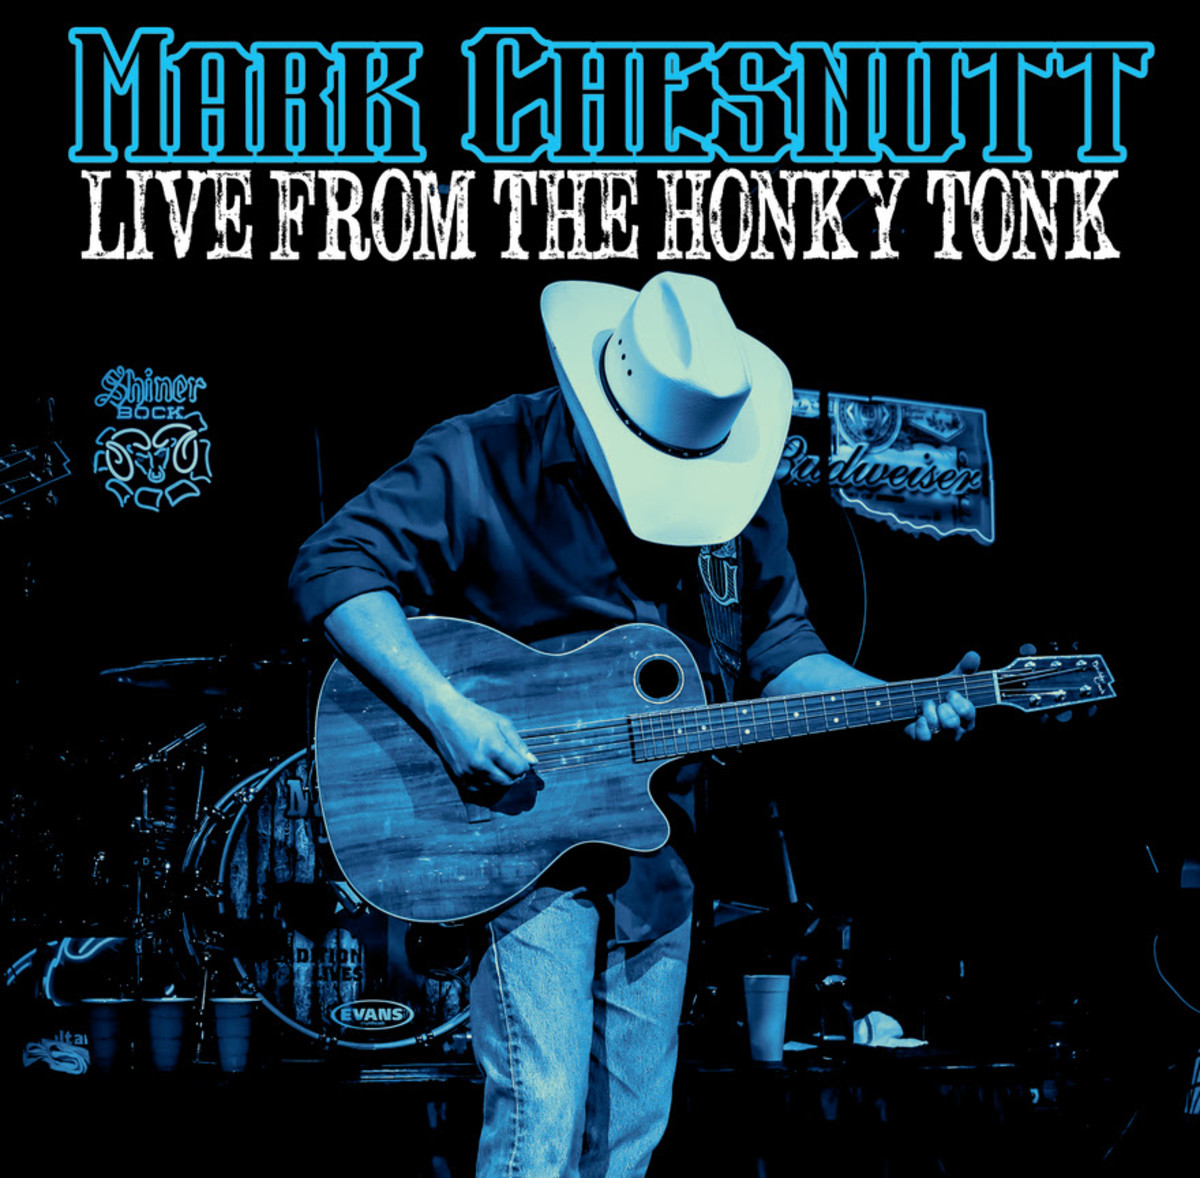 Mark Chesnutt Releases New Album and Discusses His Career, Past and Present